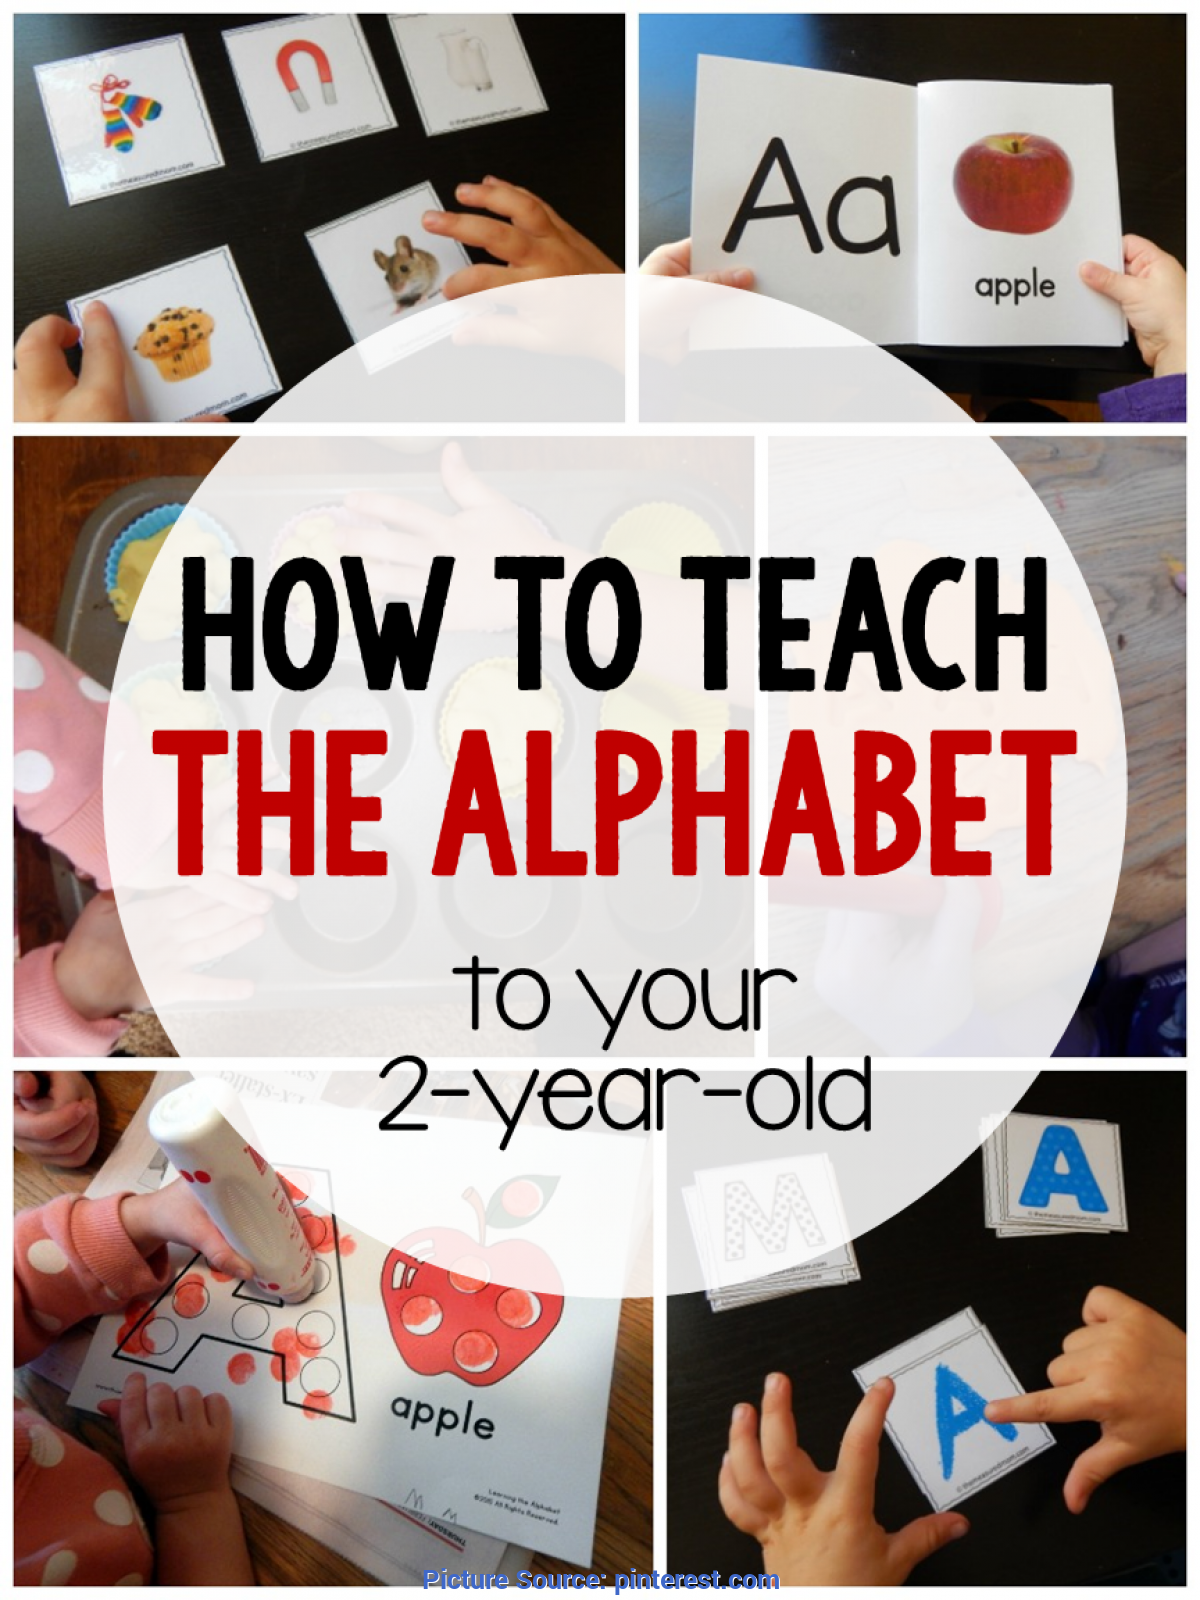 Great Learning Program For 2 Year Old At Home Alphabet Activities For 2-Year-Olds | Activities, Check And Lear